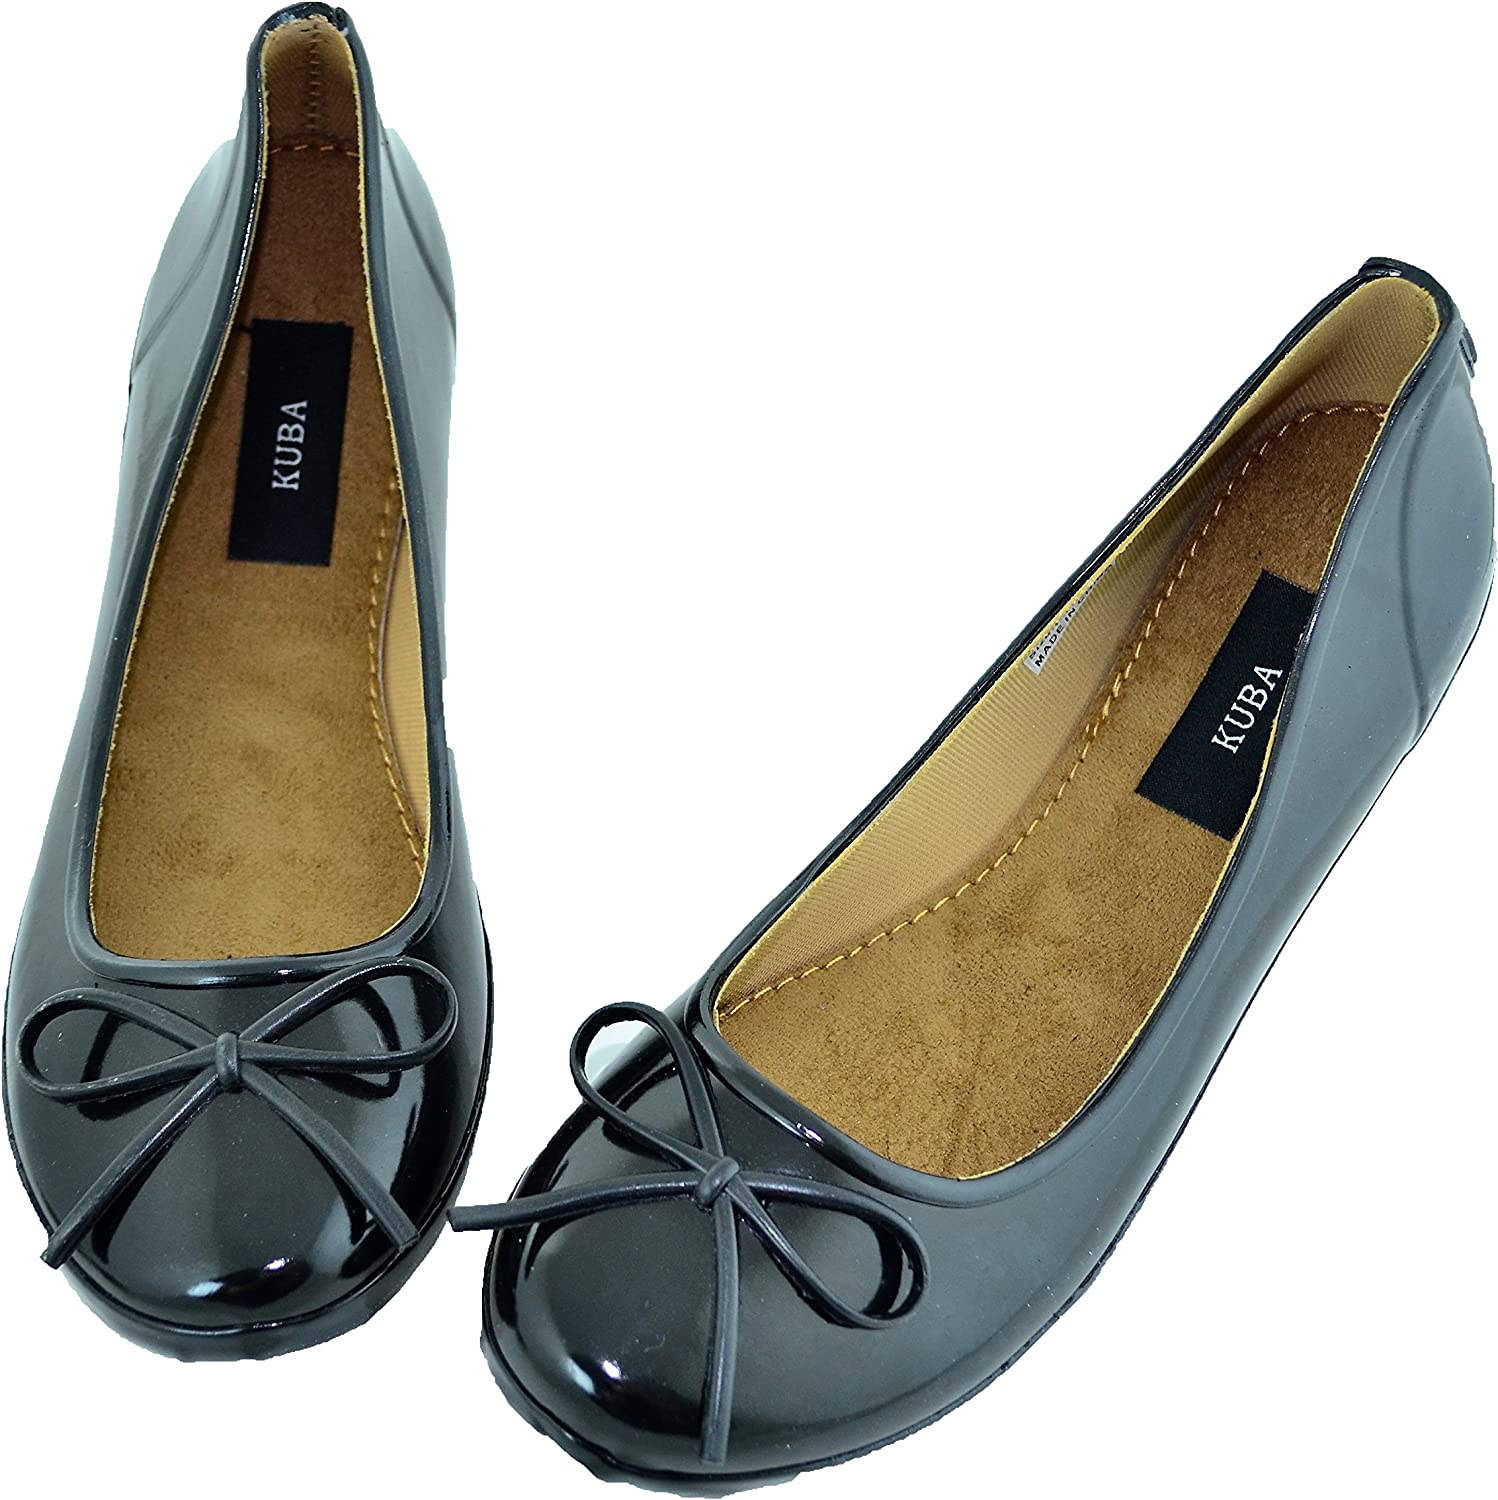 Kuba Black Handmade Natural Soft Rubber Slip On Ballet Flat shoes with Bow